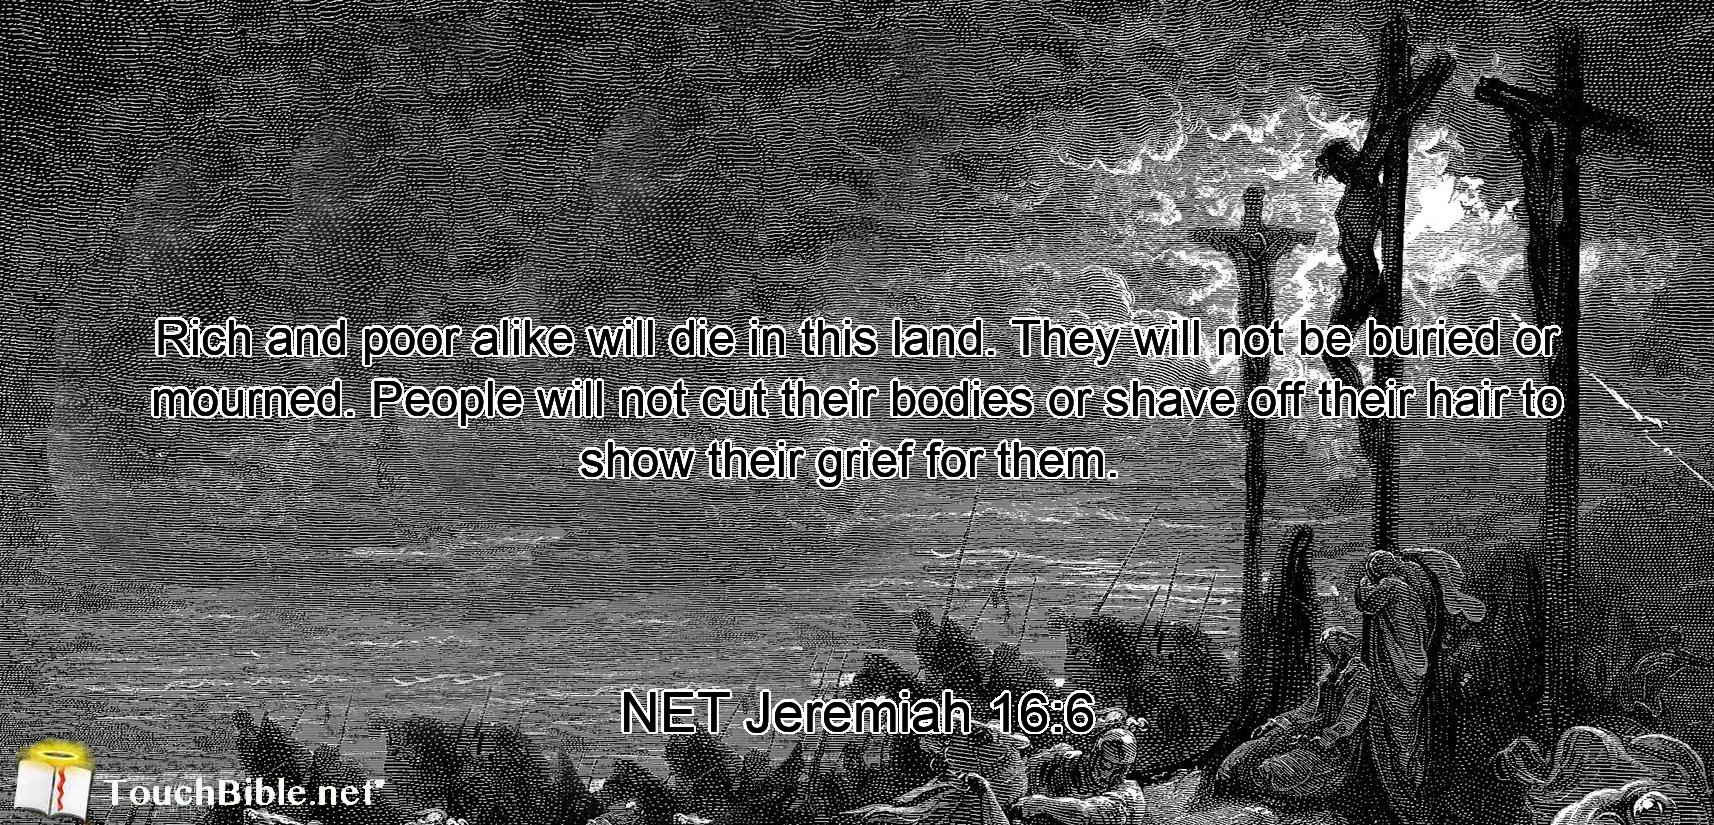 Rich and poor alike will die in this land. They will not be buried or mourned. People will not cut their bodies or shave off their hair to show their grief for them.